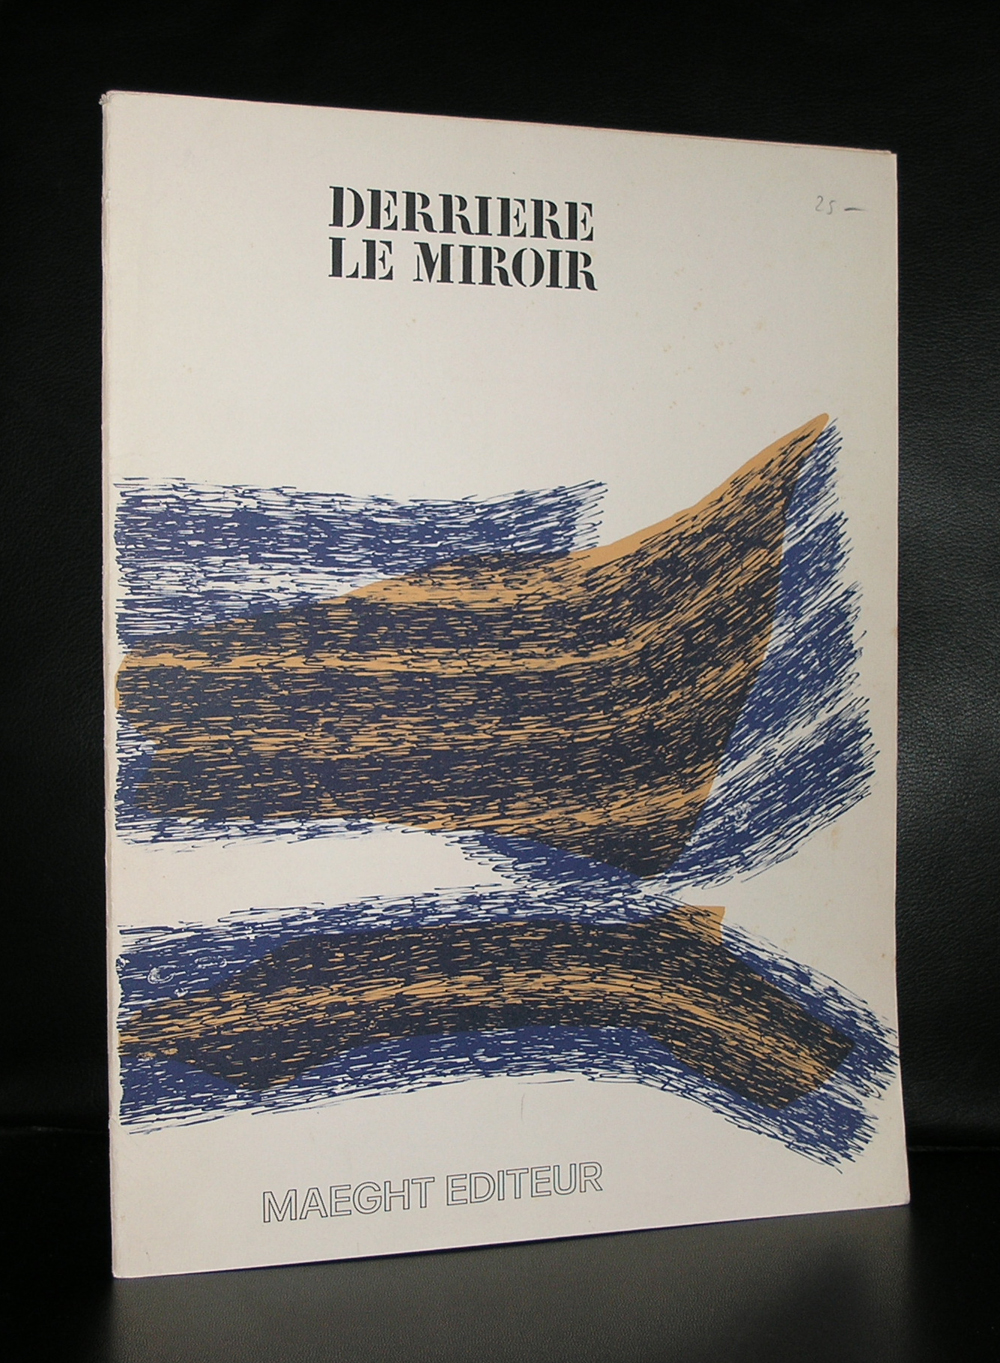 Maeght edition derriere le miroir ftn books for Maeght derriere le miroir